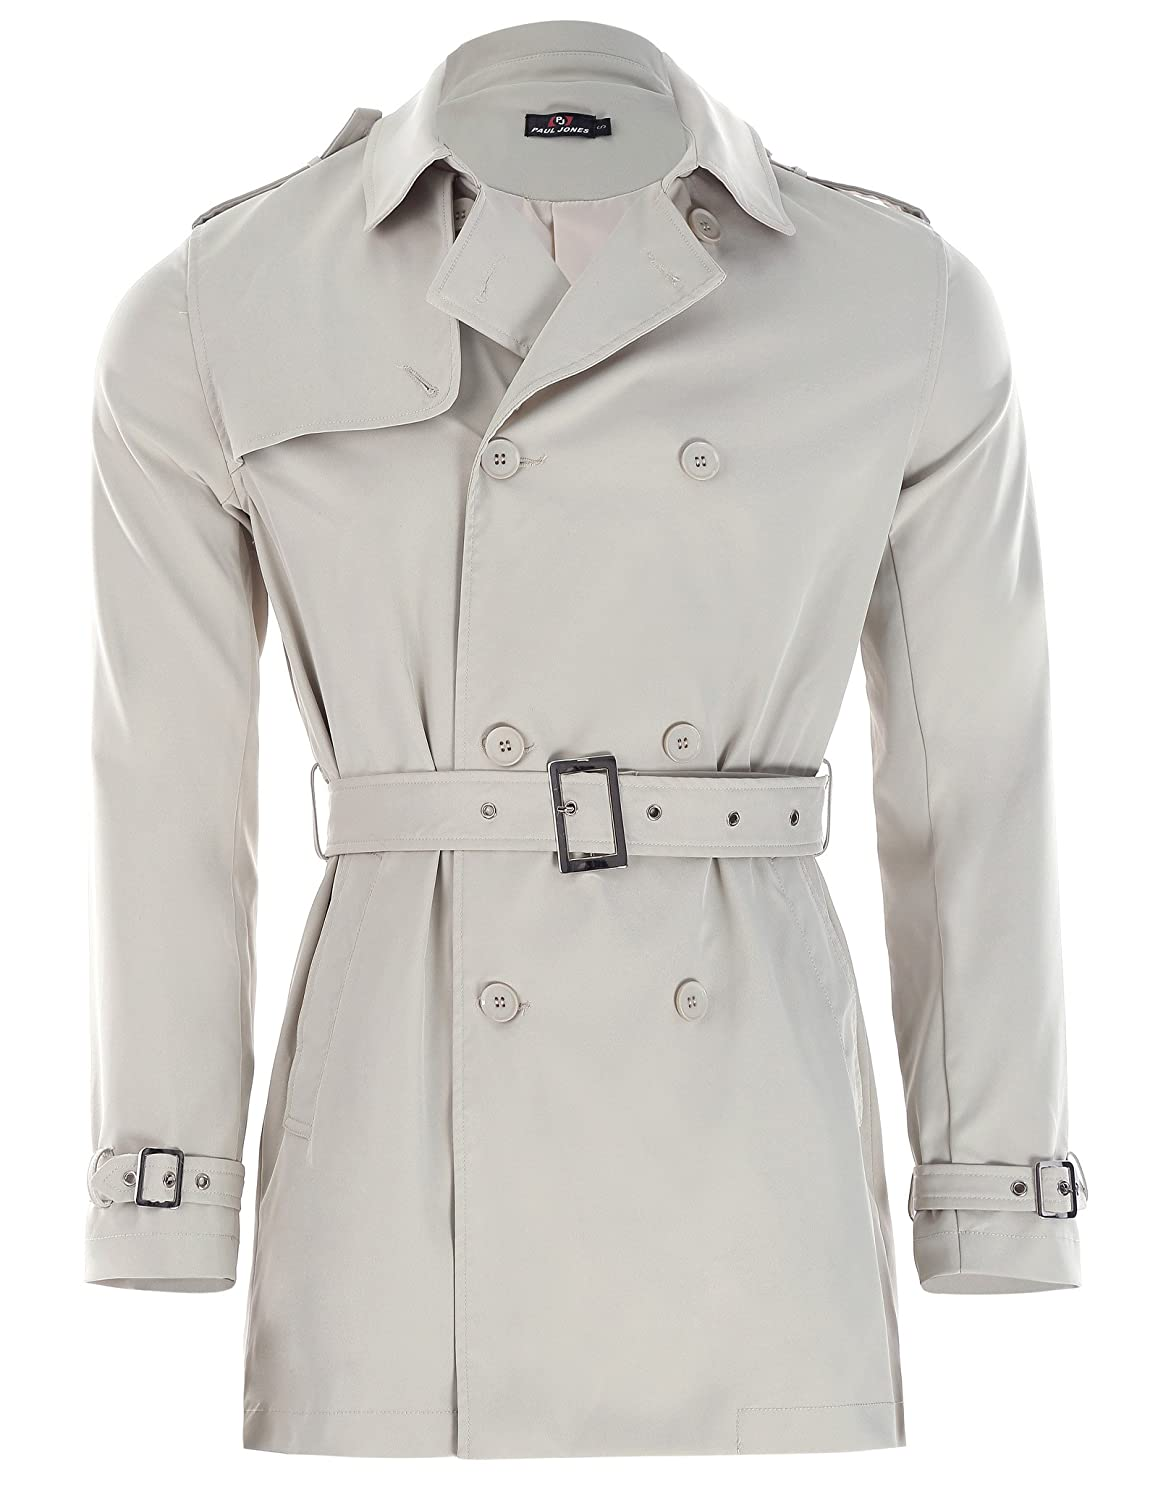 e6a7f2f4e16 Fashion lapel collar   double-breasted trench coat windbreaker jacket. Two  open side-entry pockets